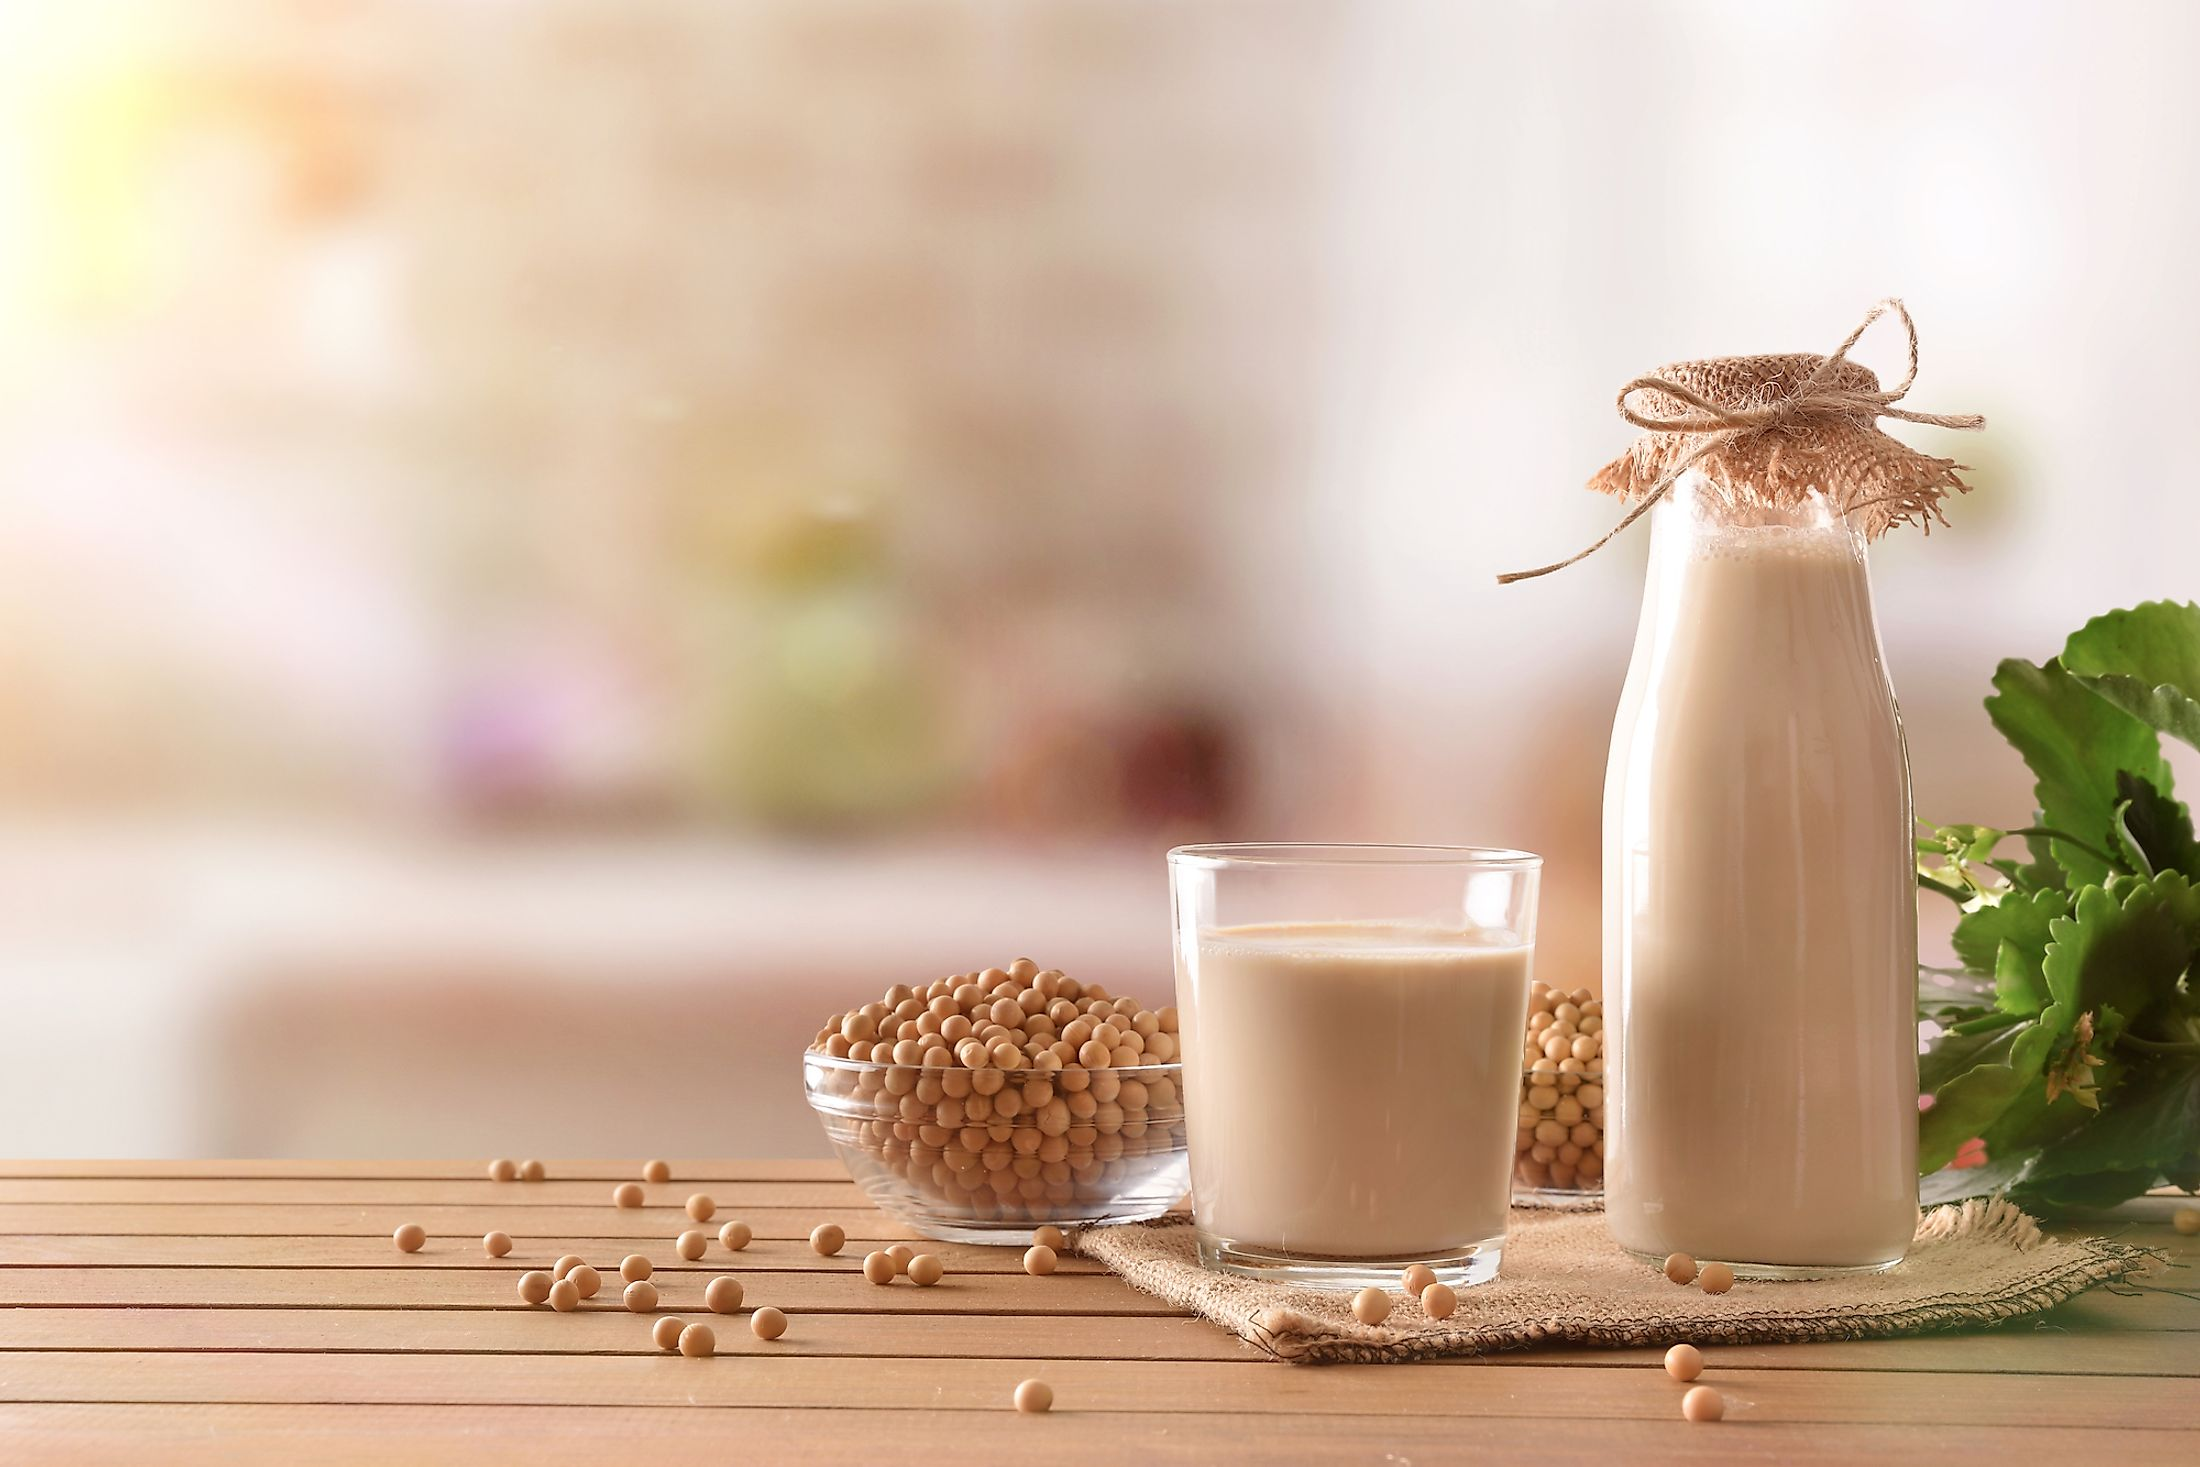 Soy milk and grains on a wooden table